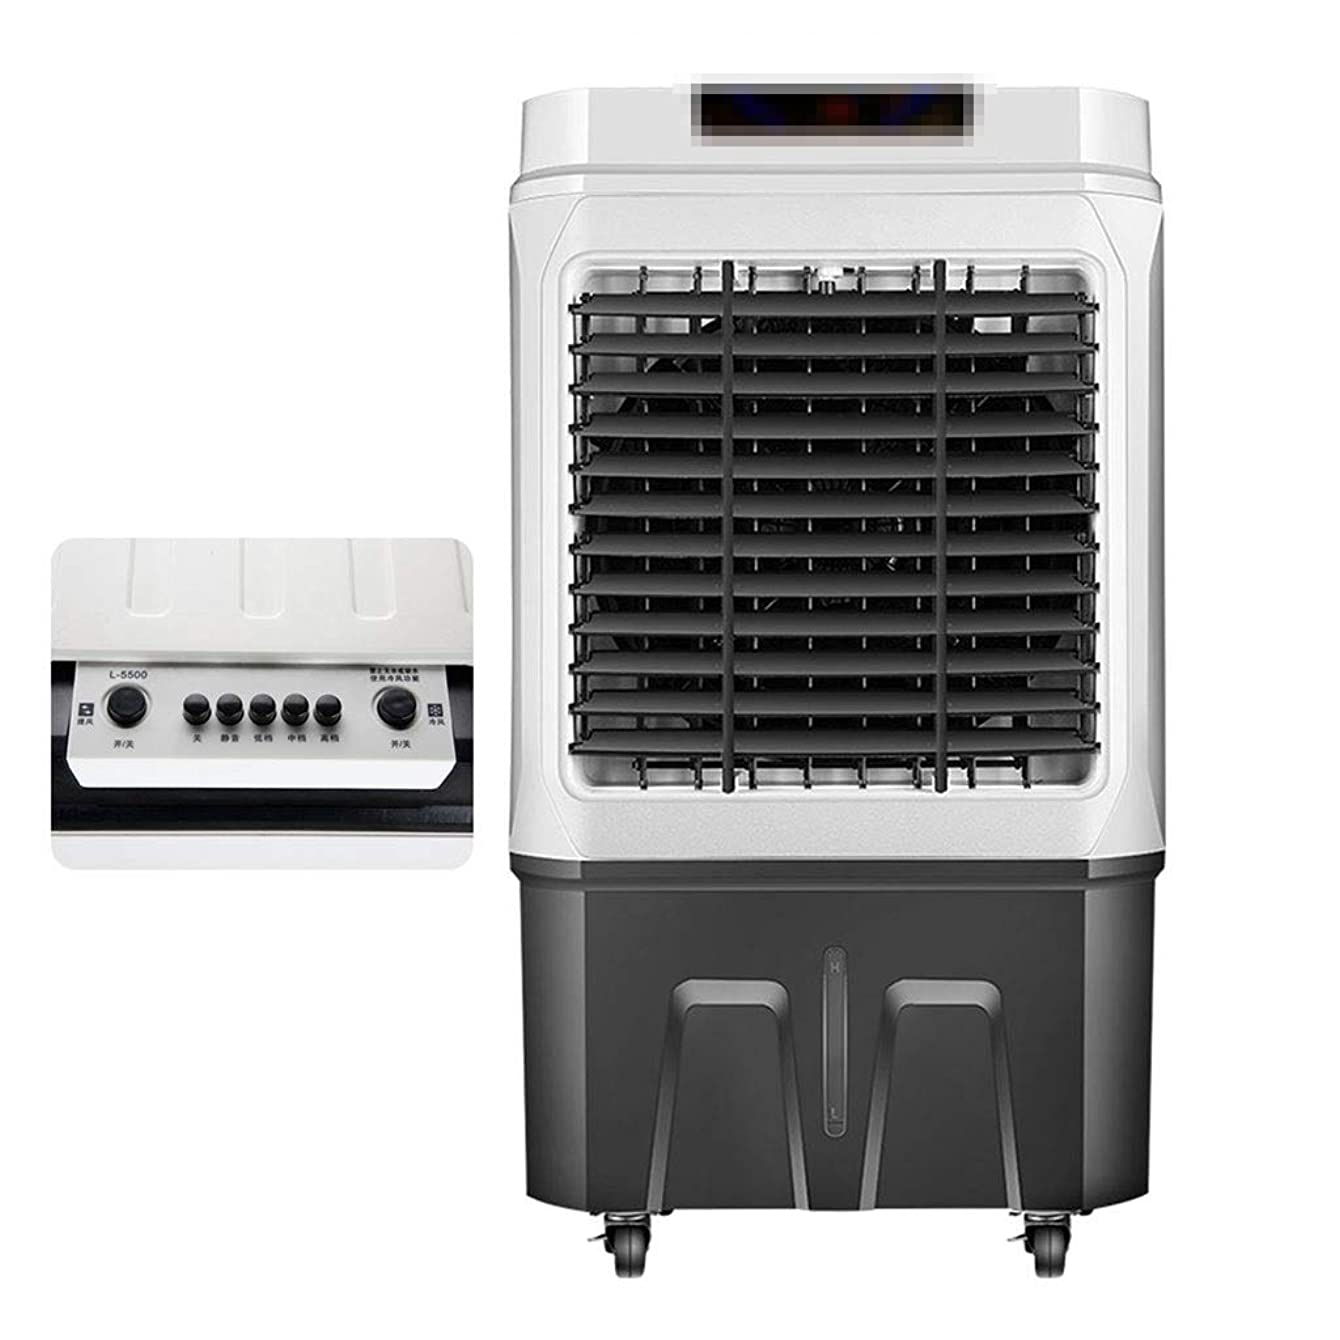 DLT Industrial Quiet Air Conditioner Fans with Whole House, 45L/12 Gal Waterbox, Evaporative Air Cooler Uses Water and Ice, 6000 Cubic Metre/H, 4 Speeds, White, Gray